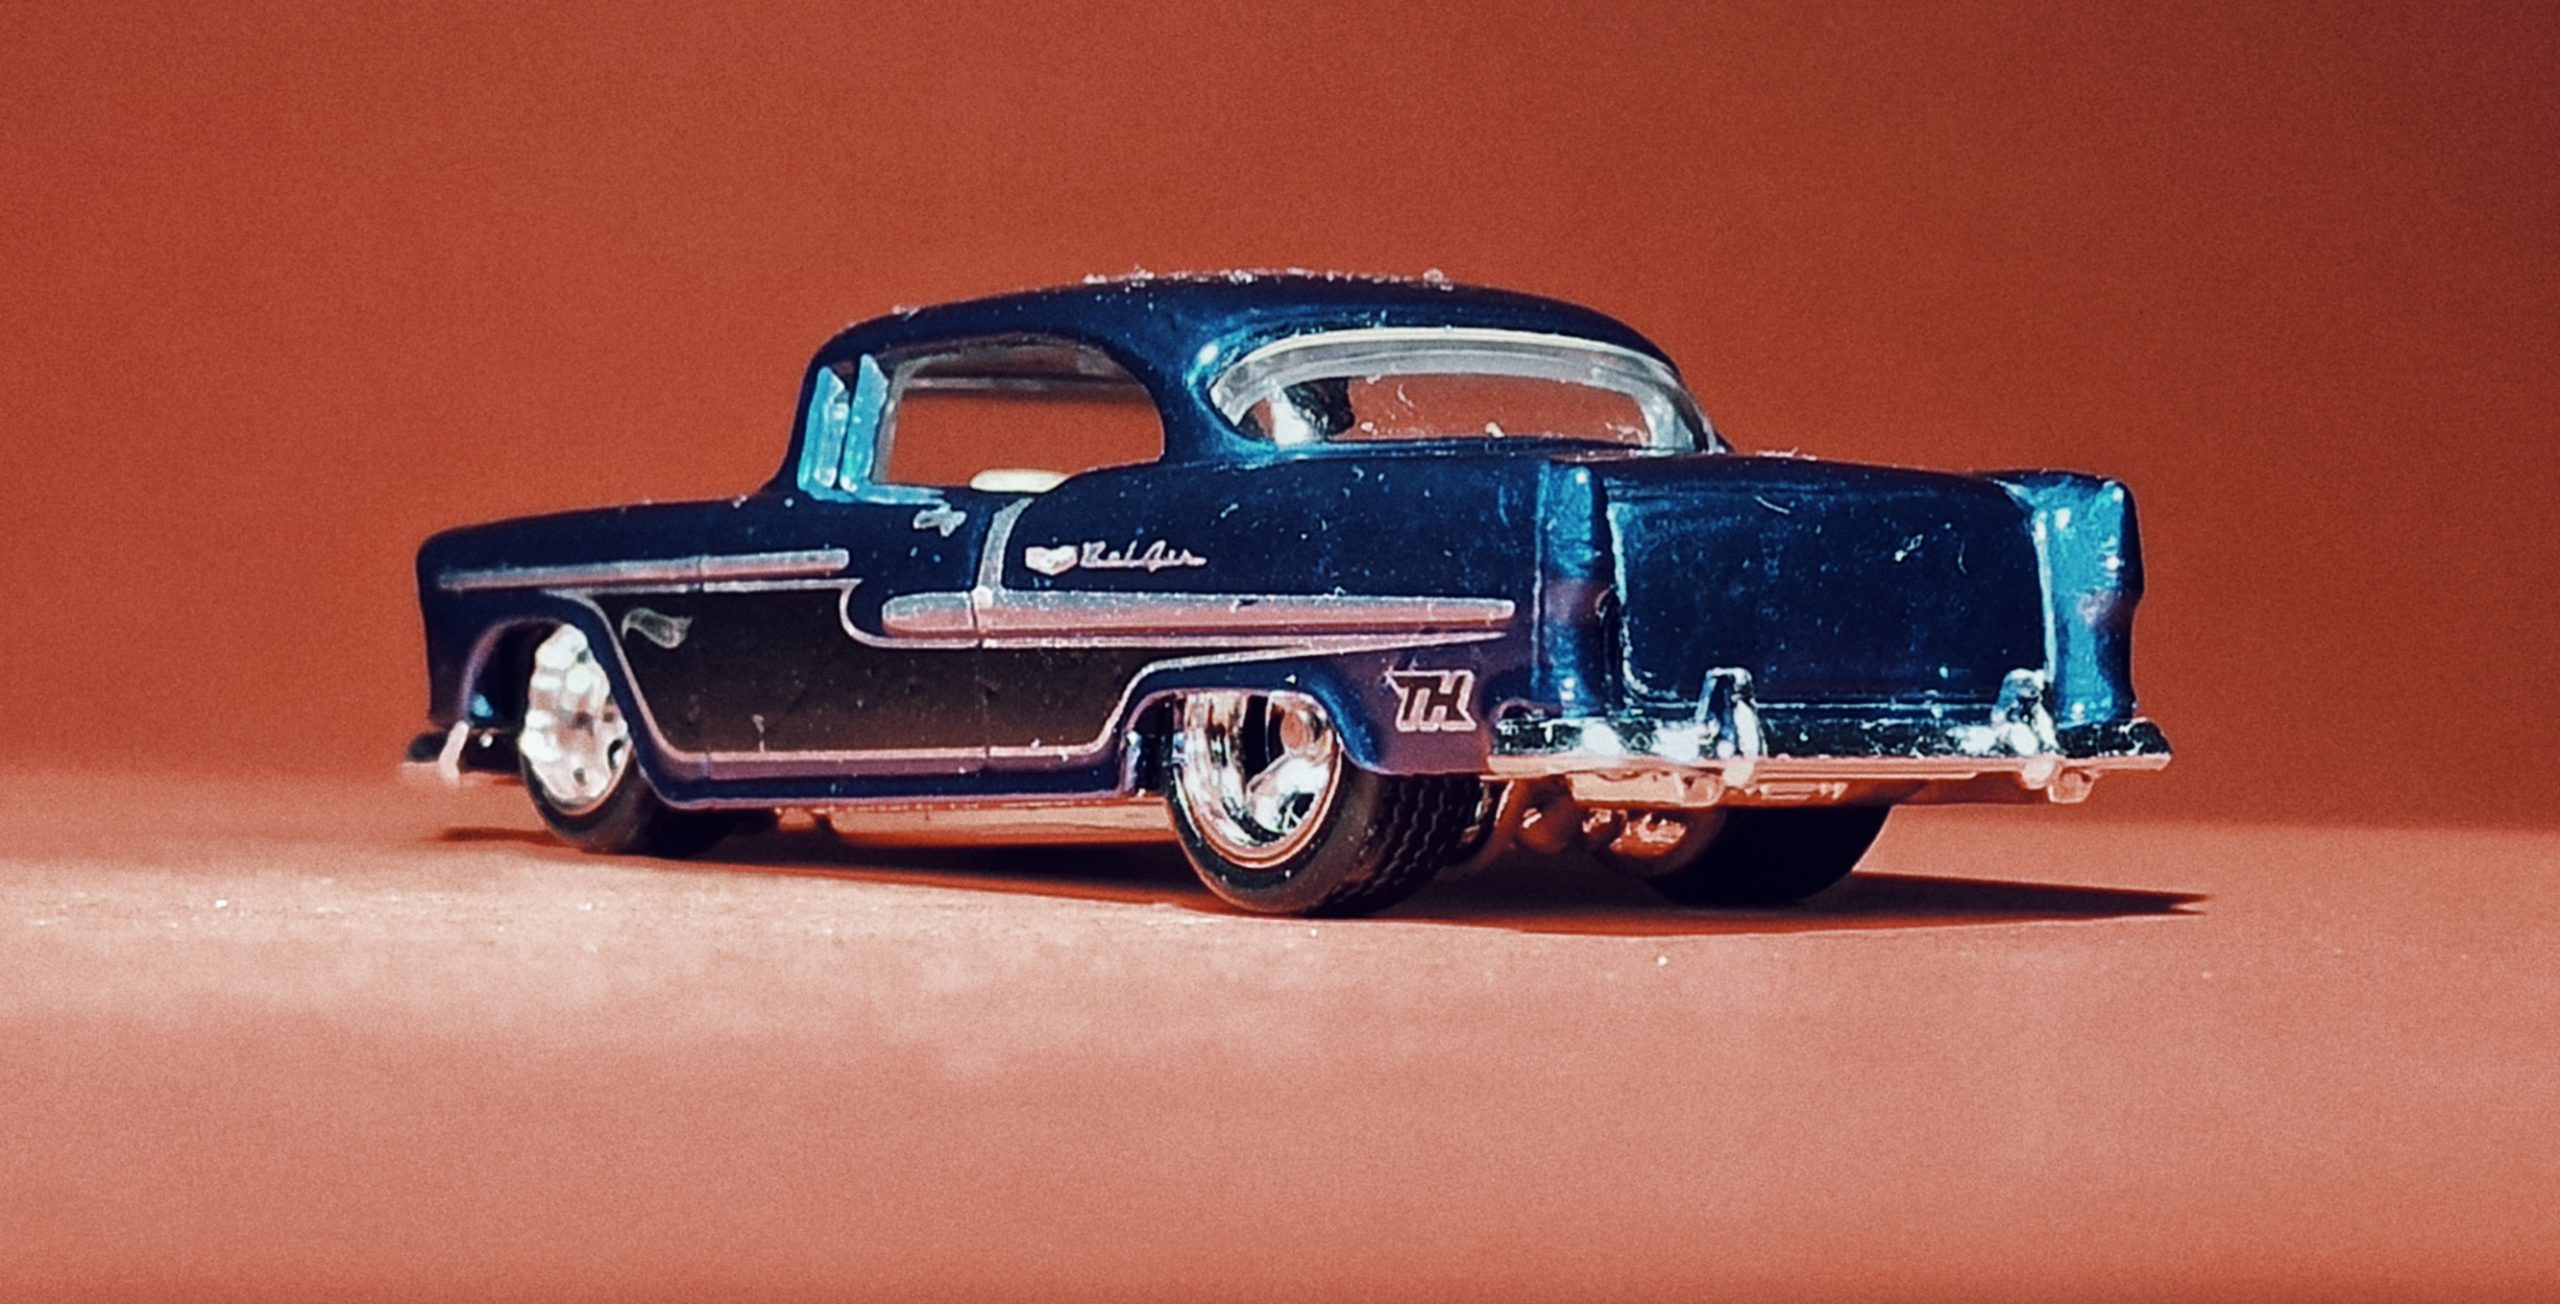 Hot Wheels '55 Chevy () 2020 (20/250) Chevy Bel Air (175) spectraflame blue Super Treasure Hunt (STH) back angle